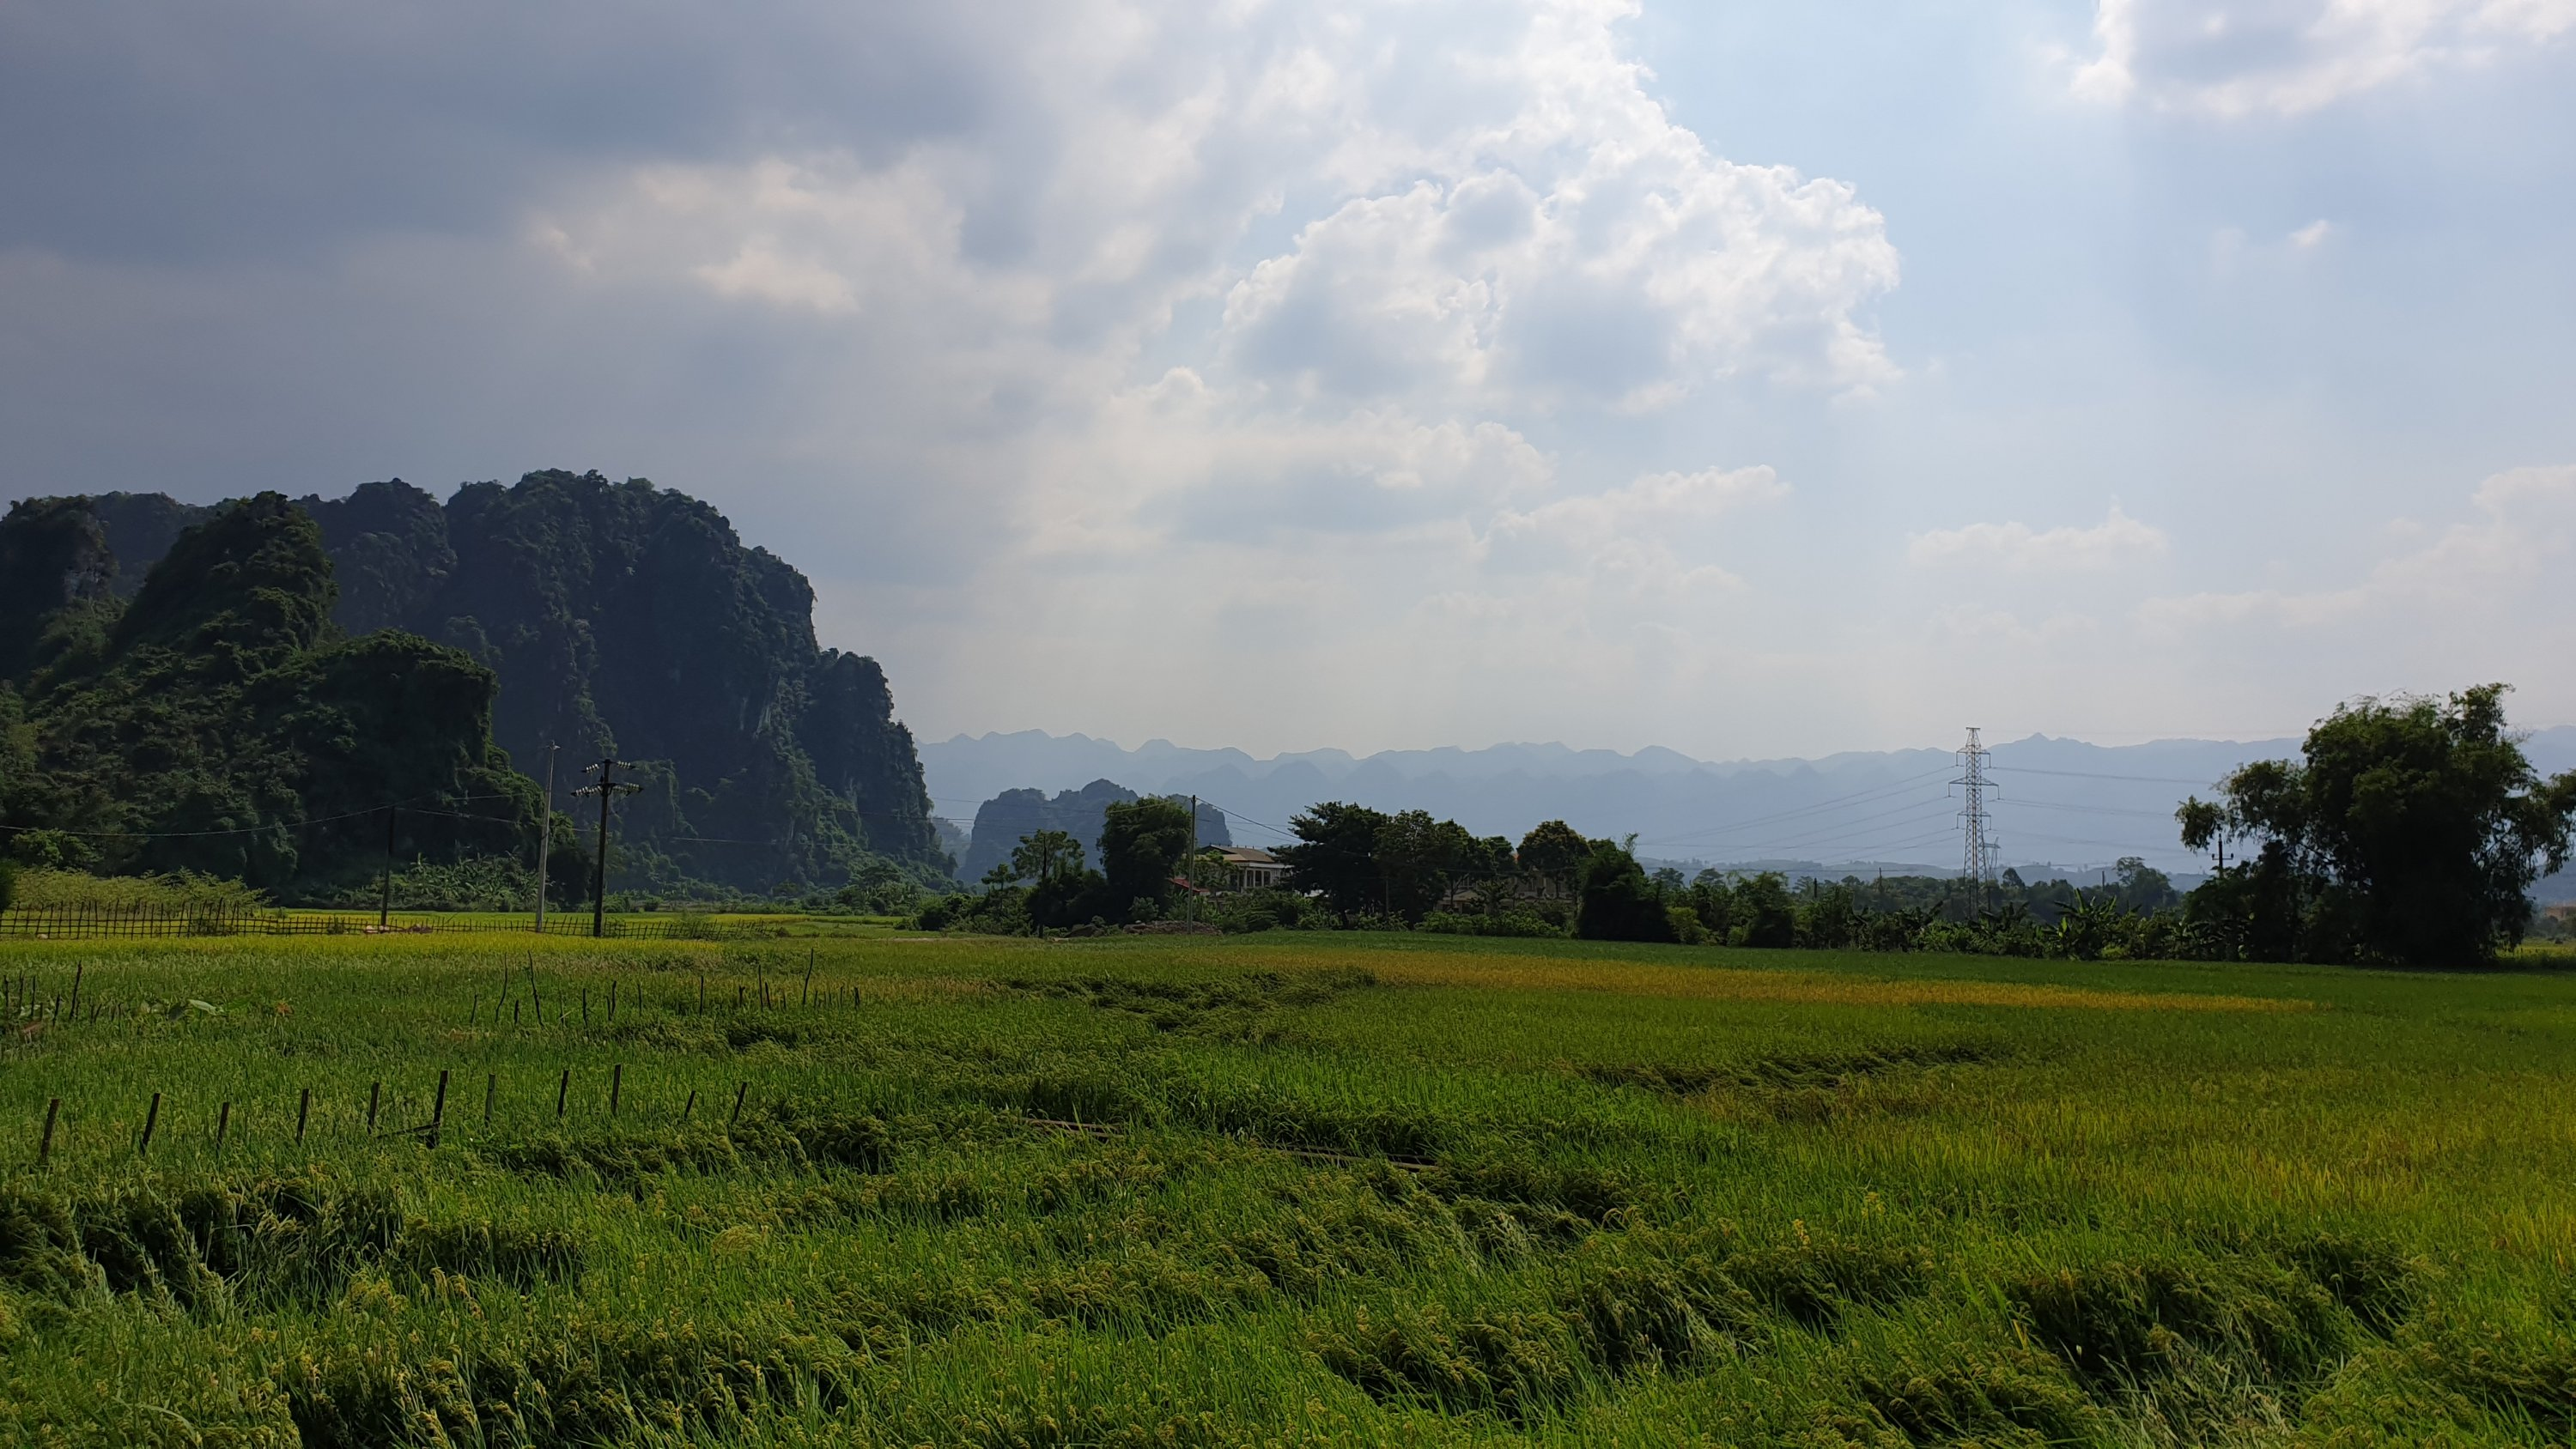 View of limestone monolith and fields of rice en route to Mai Chau